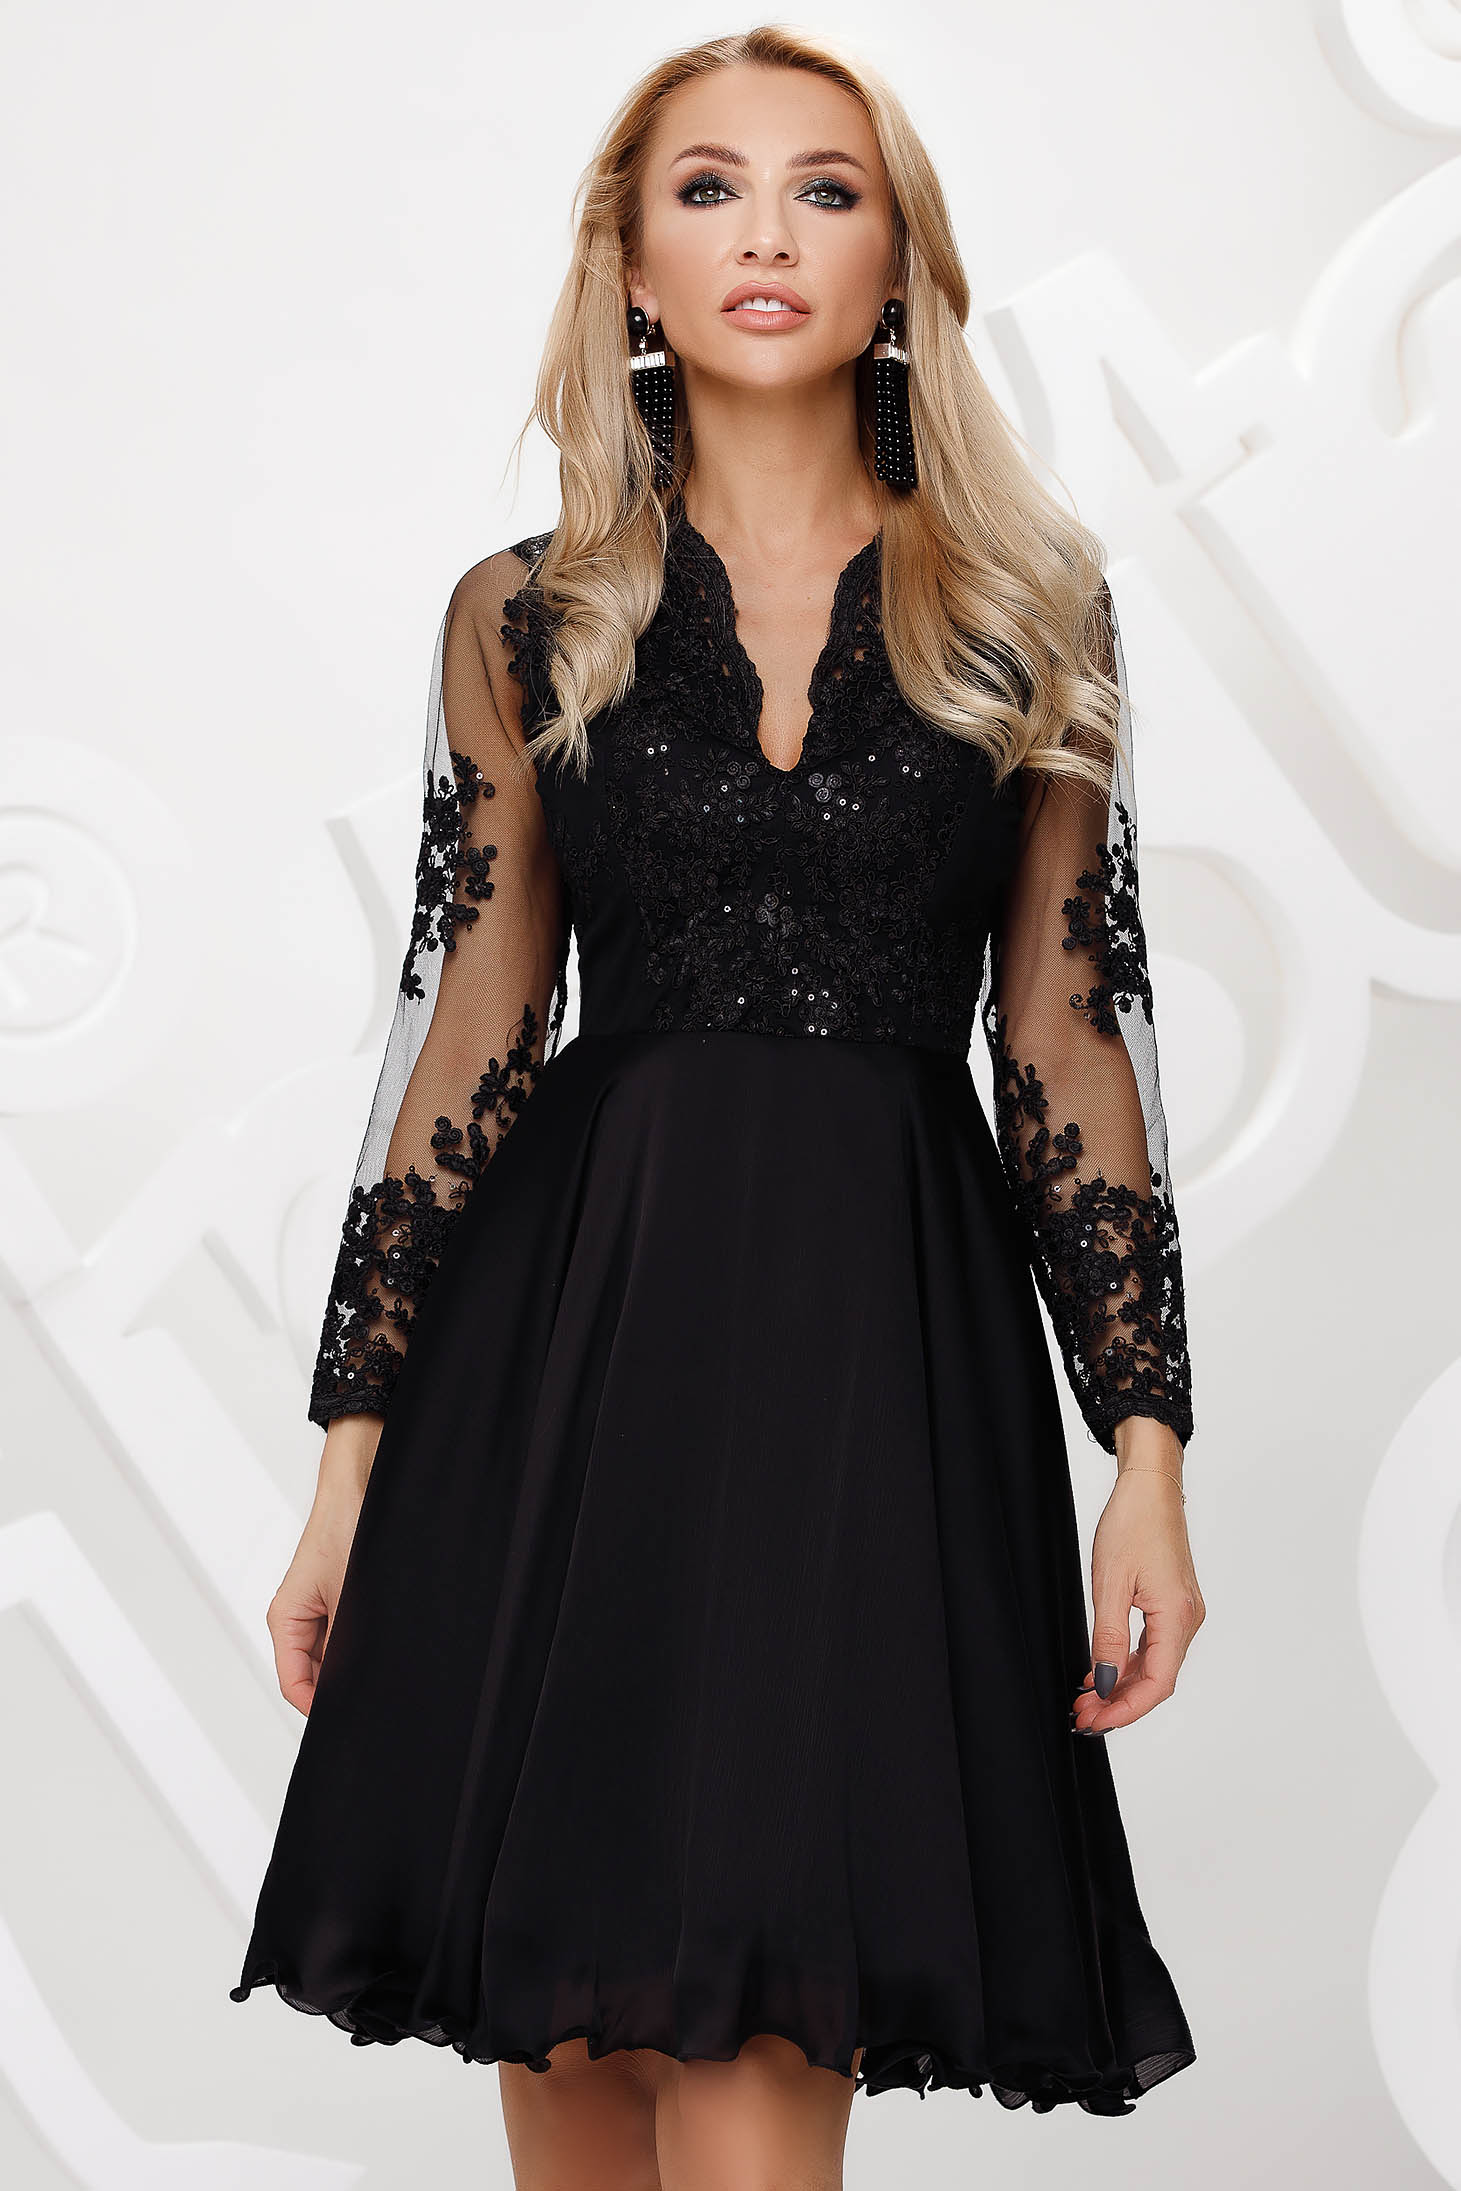 Black dress from tulle cloche occasional lace and sequins details